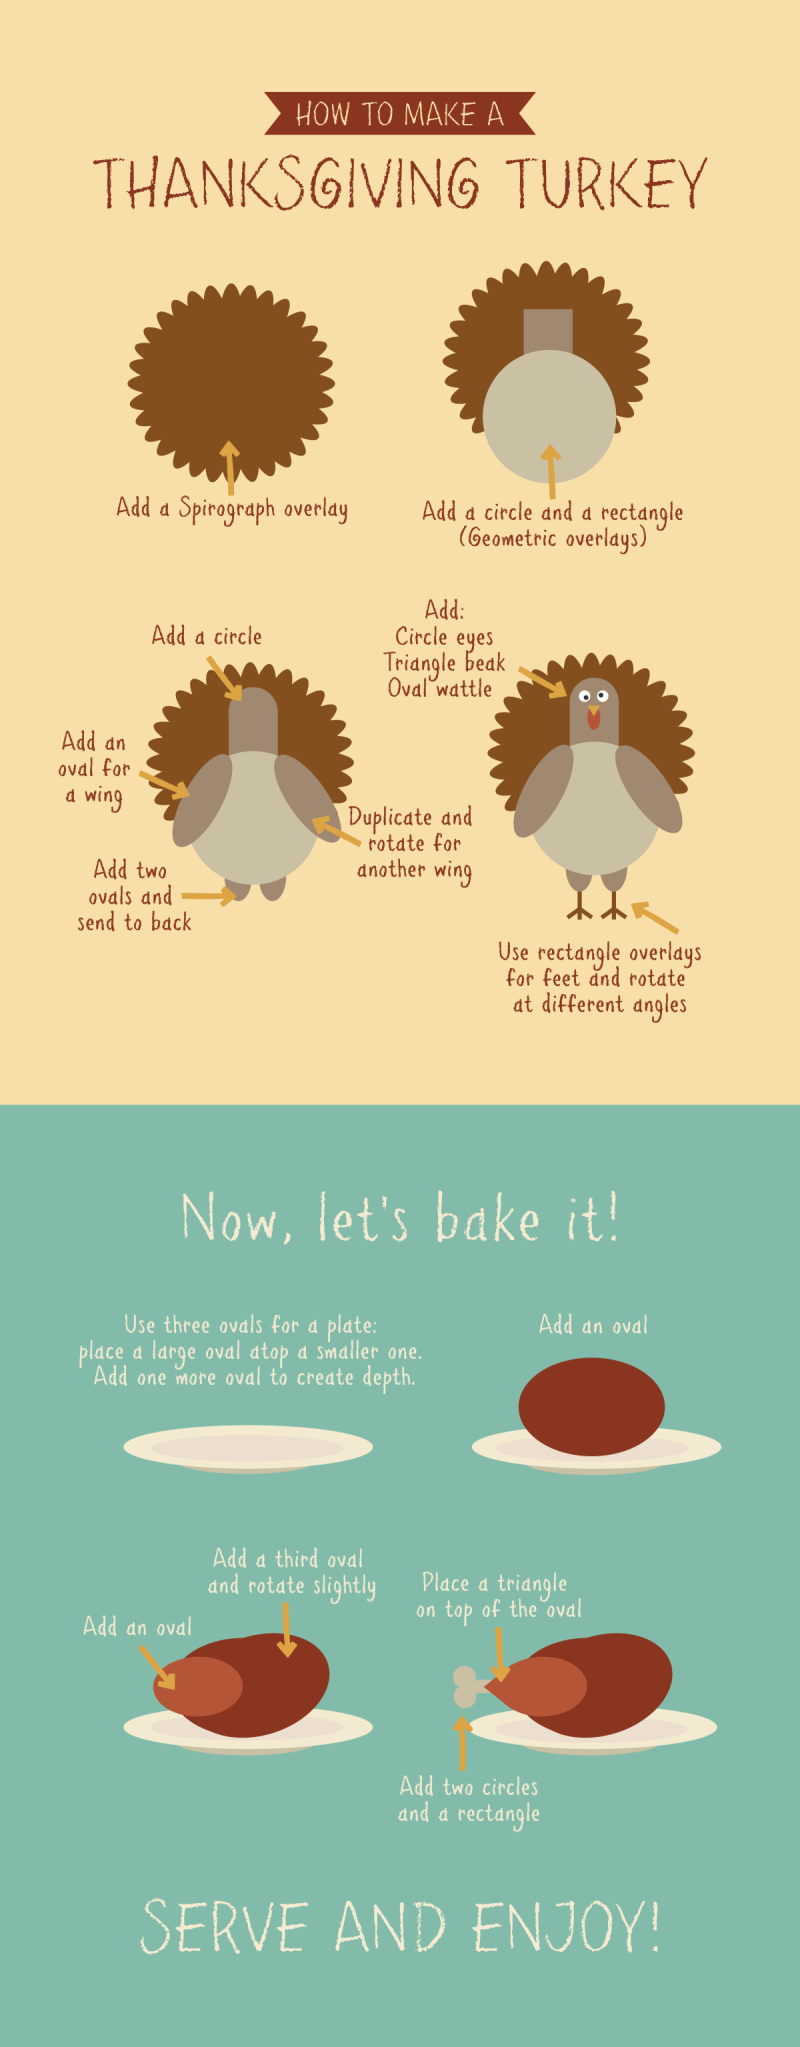 Step by step instructions on how to build a turkey from simple geometric shapes. Come to PicMonkey for more Thanksgiving graphics & graphics to go with it!